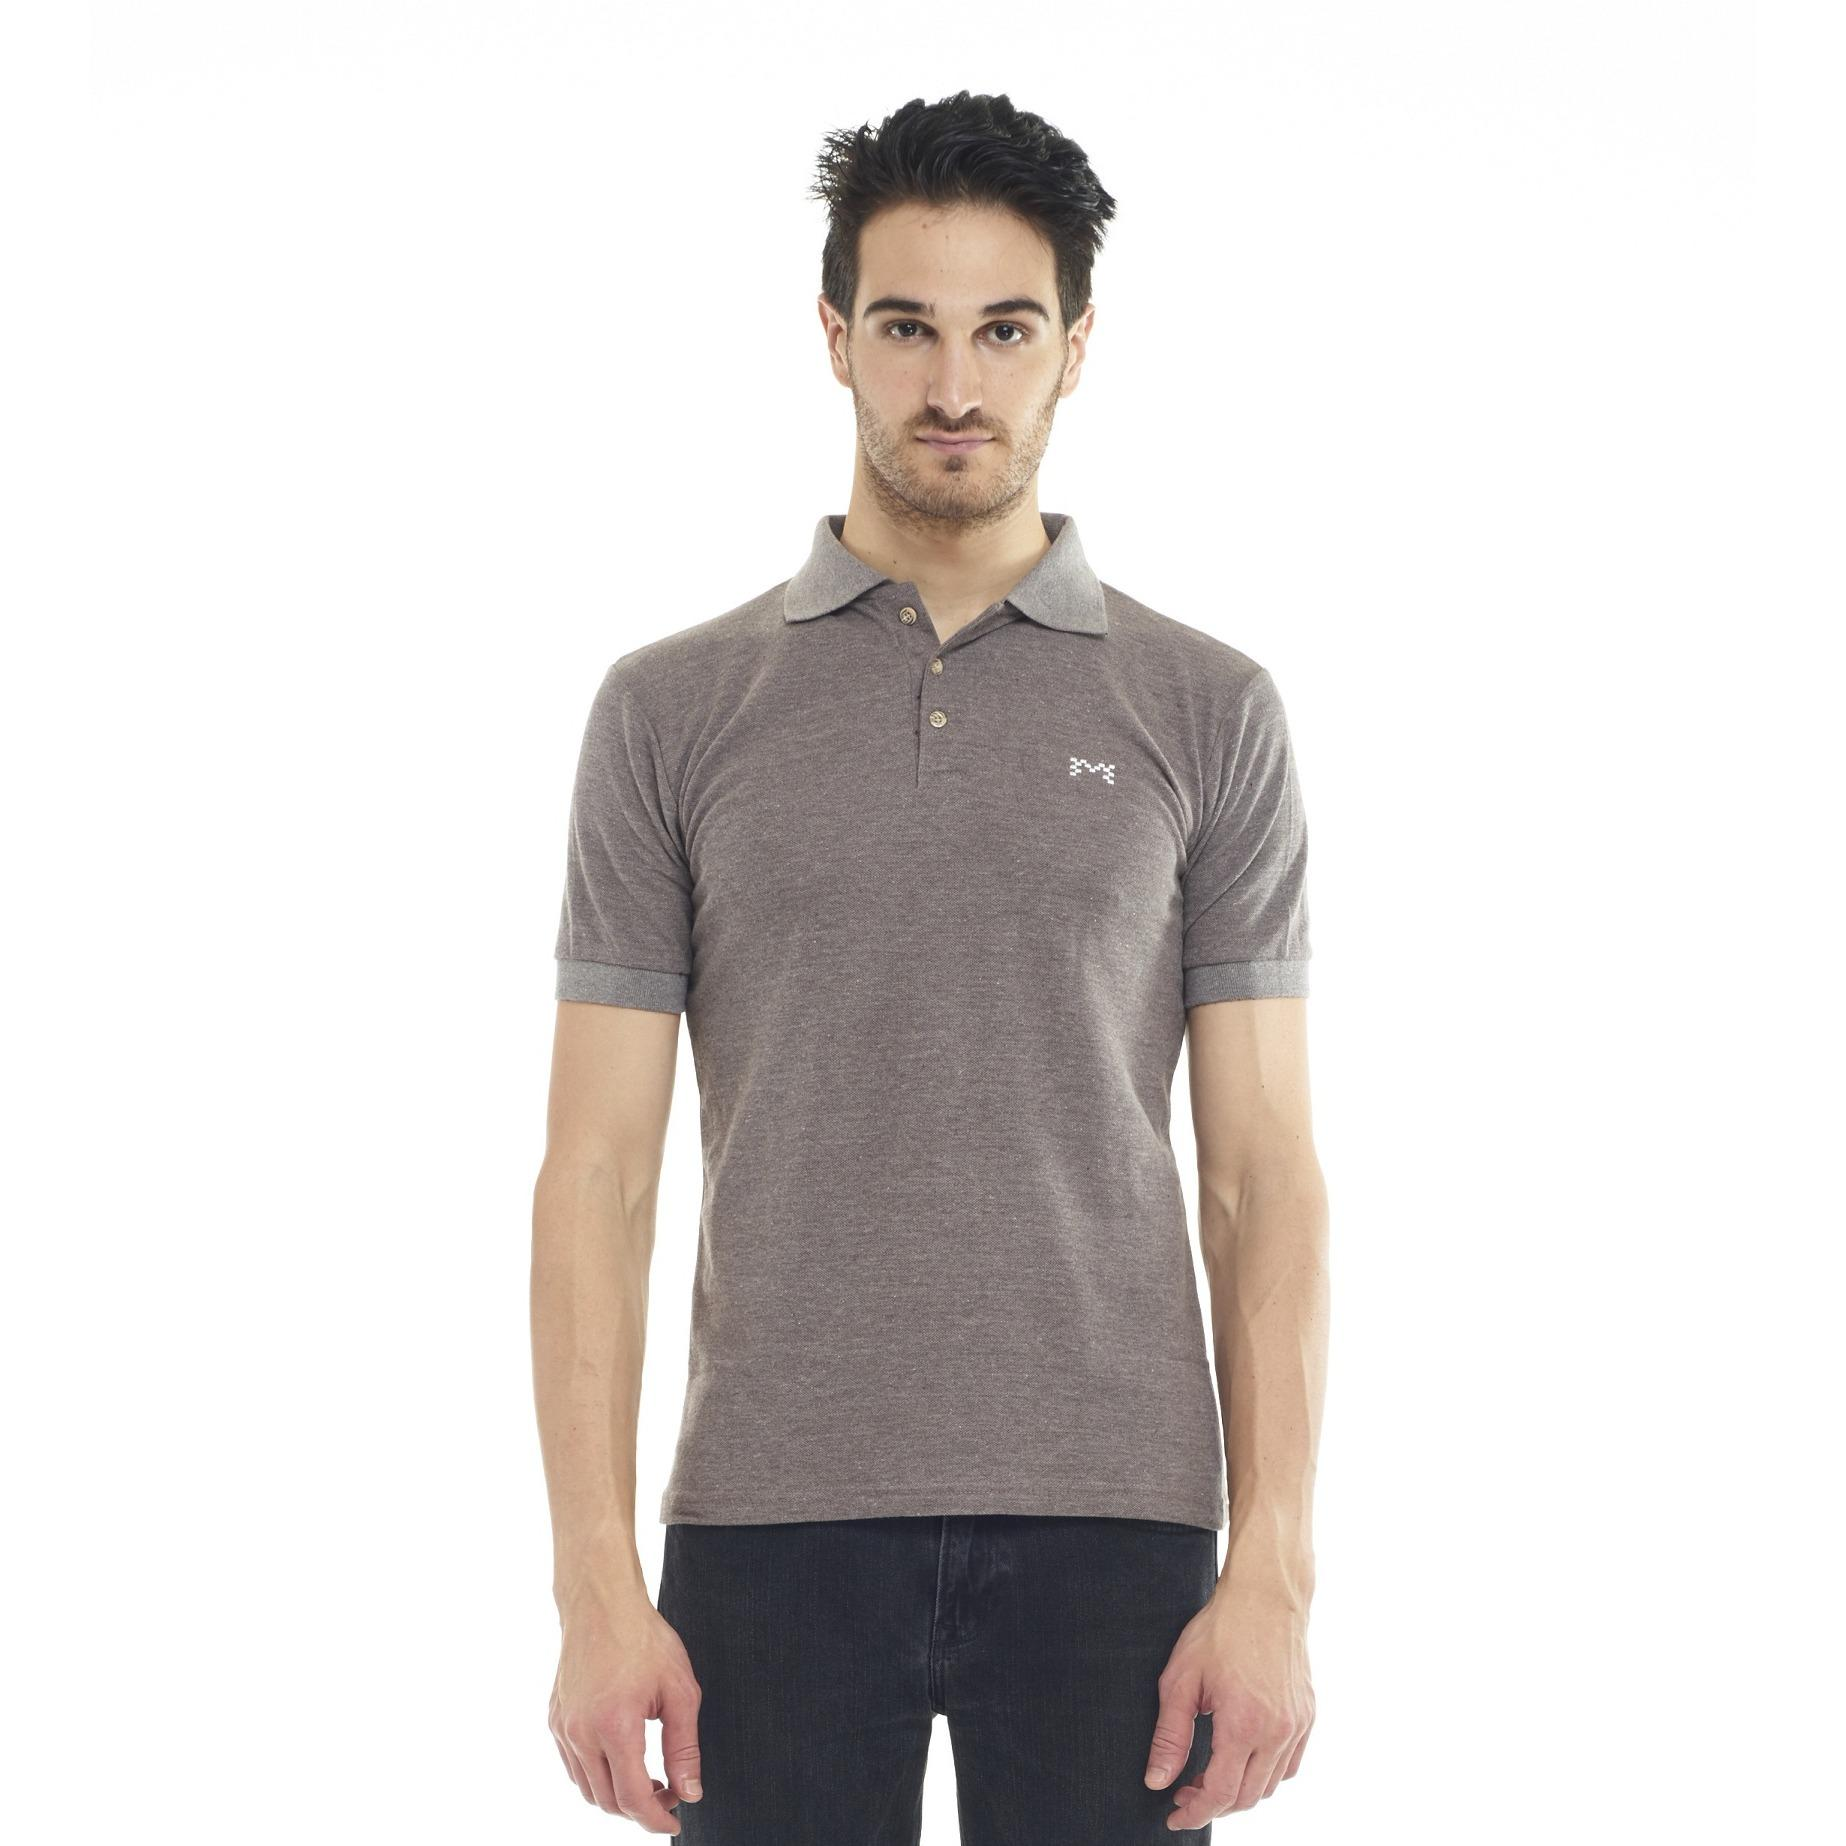 Beli Mark Inc Polo Shirt Two Tone Grey Pakai Kartu Kredit